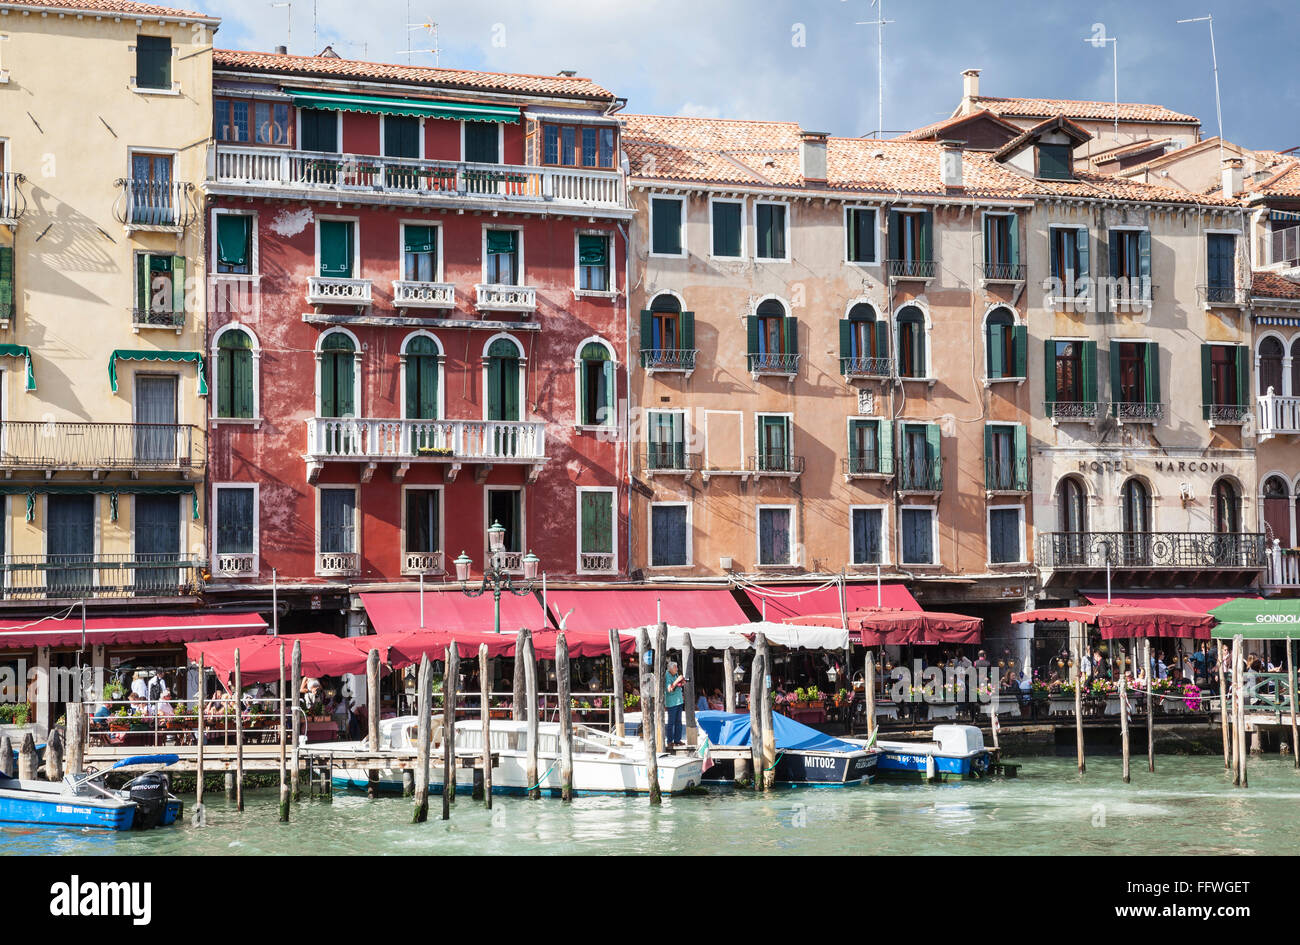 Classic Venetian buildings, boat moorings and cafes on a sunny day along  the Grand Canal in Venice